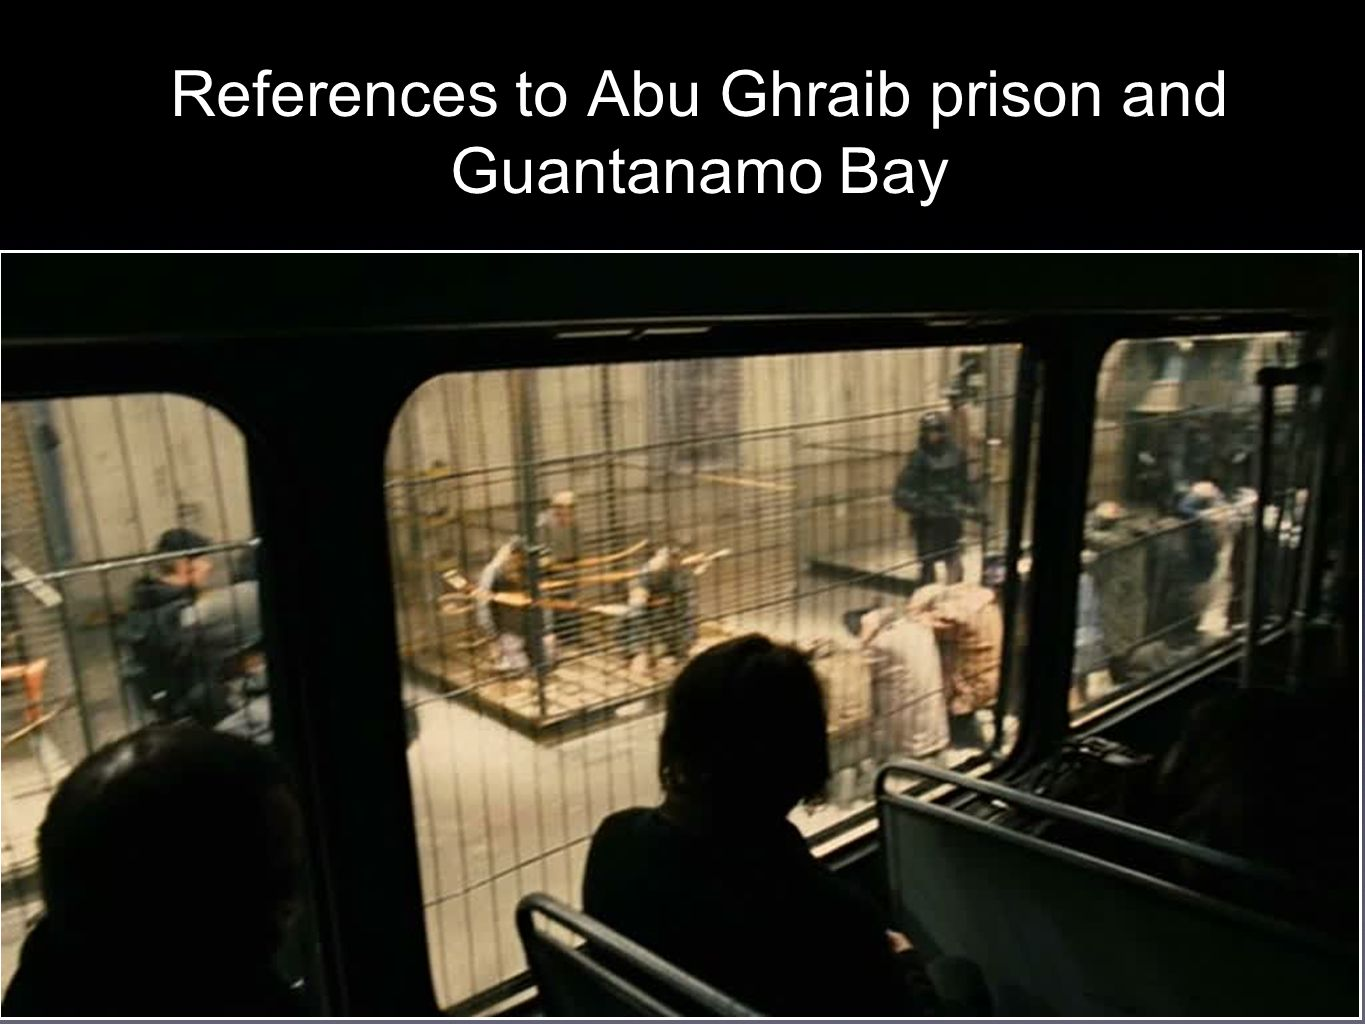 References to Abu Ghraib prison and Guantanamo Bay